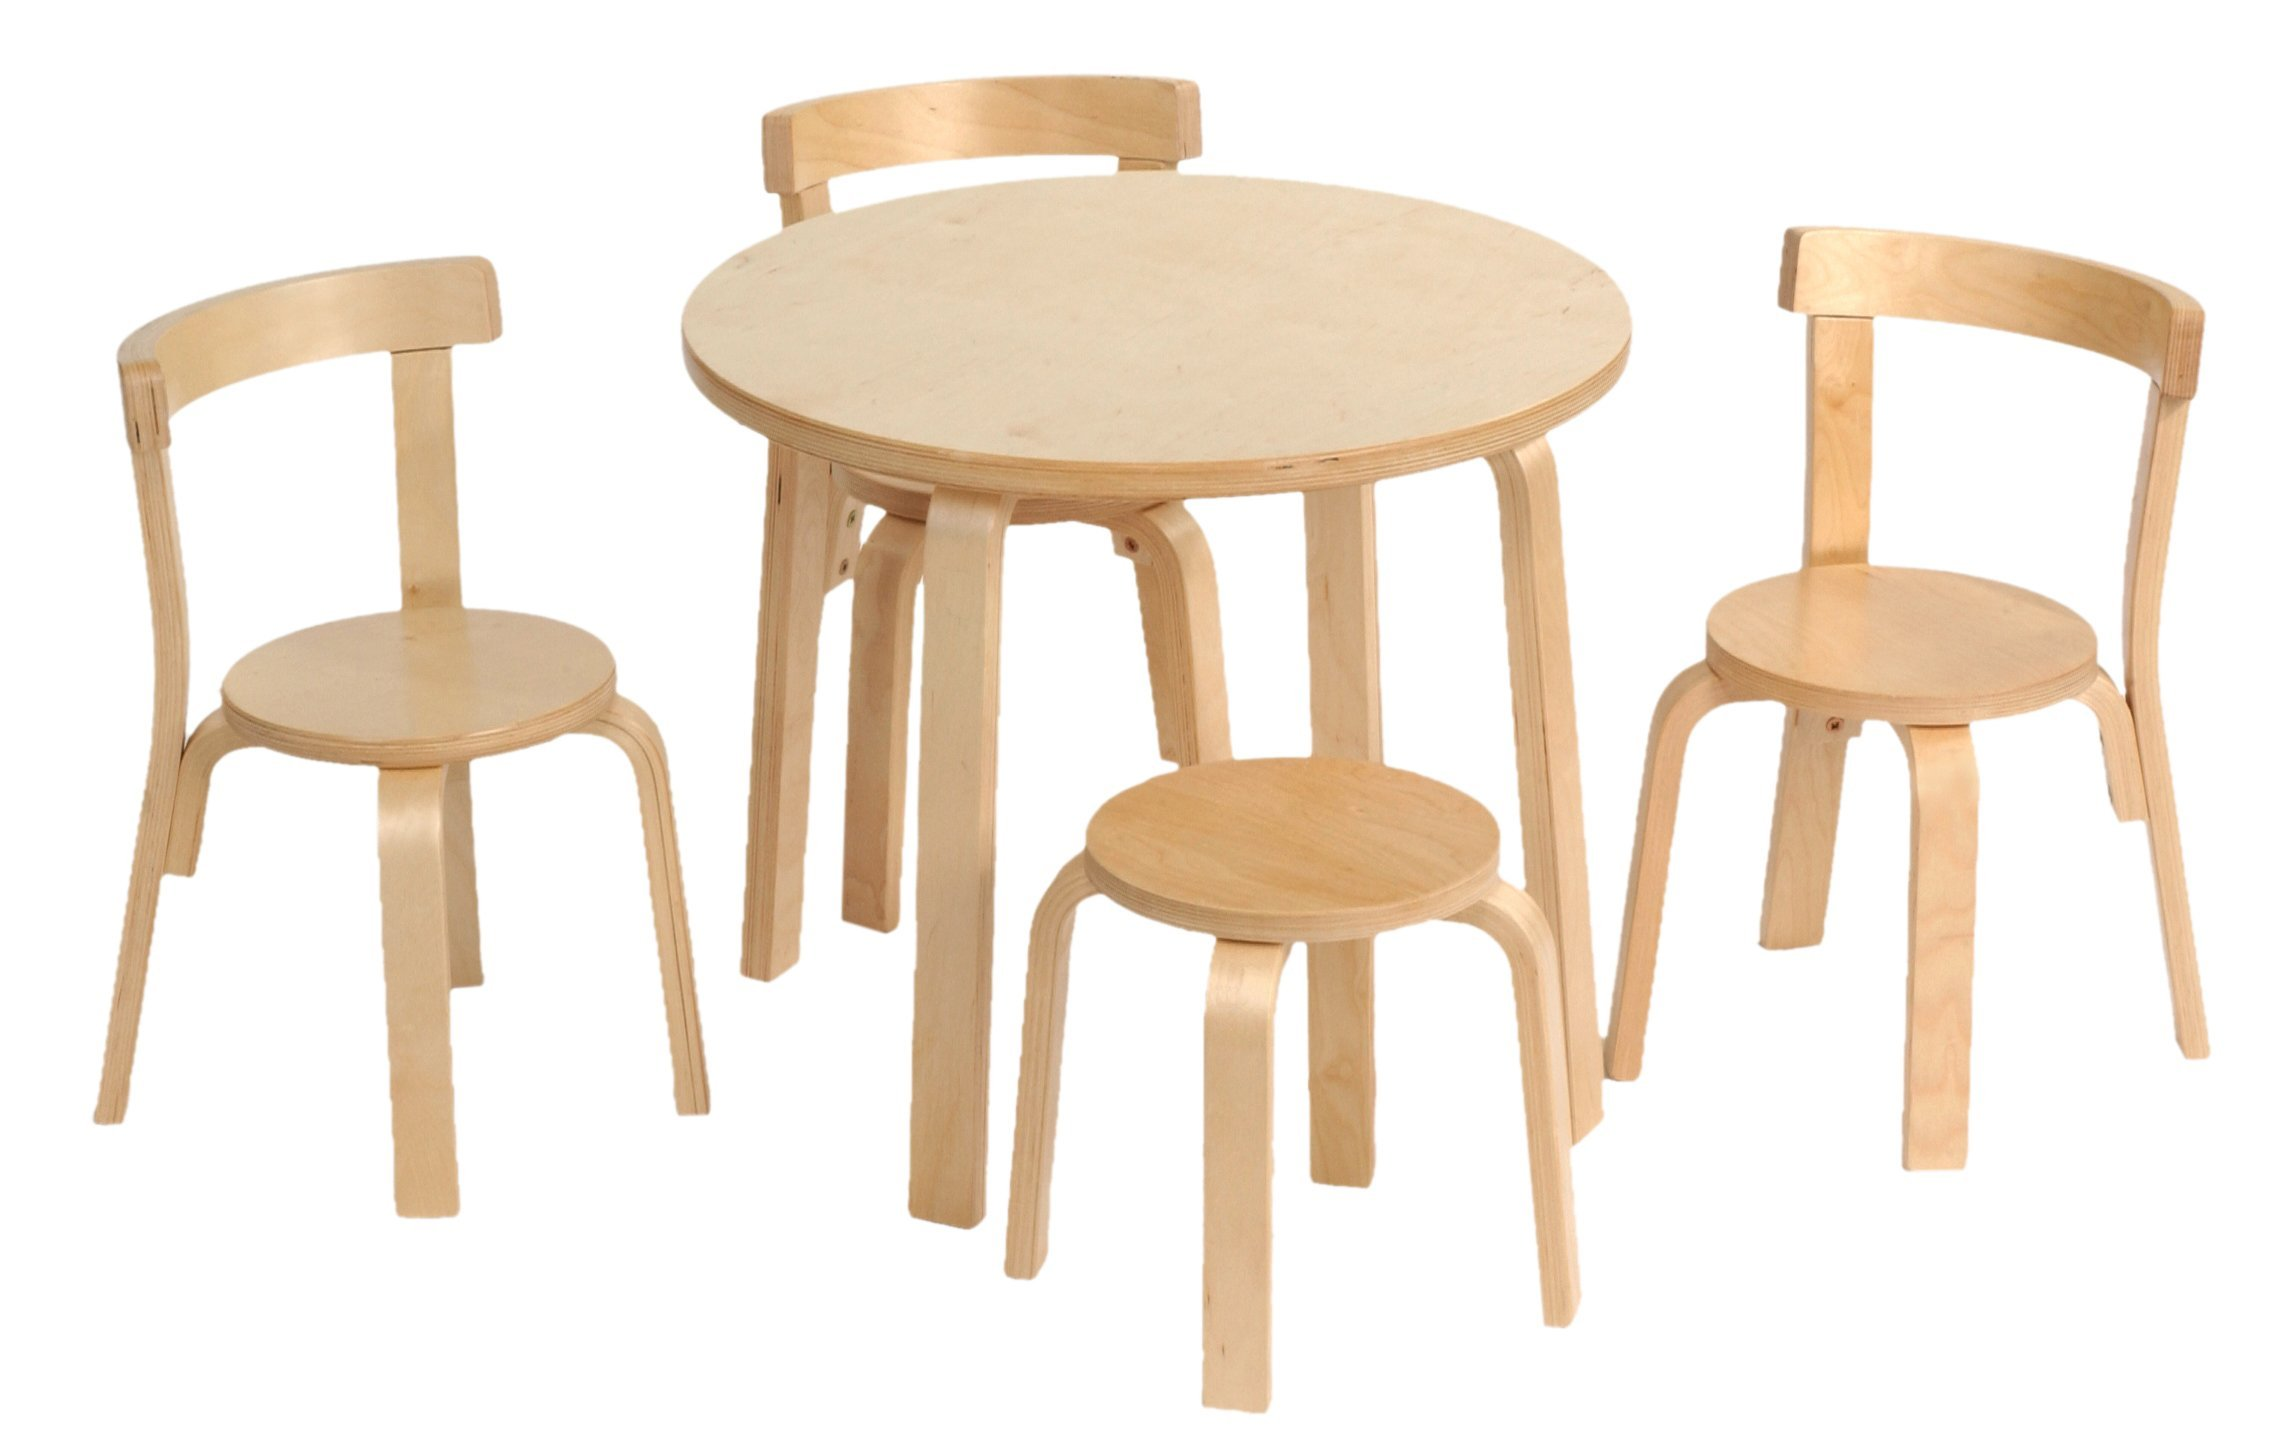 Kids Table and Chair Set - Svan Play with Me Toddler Table Set with 3 Chairs and Stool - 100% Wood (Natural) by Svan